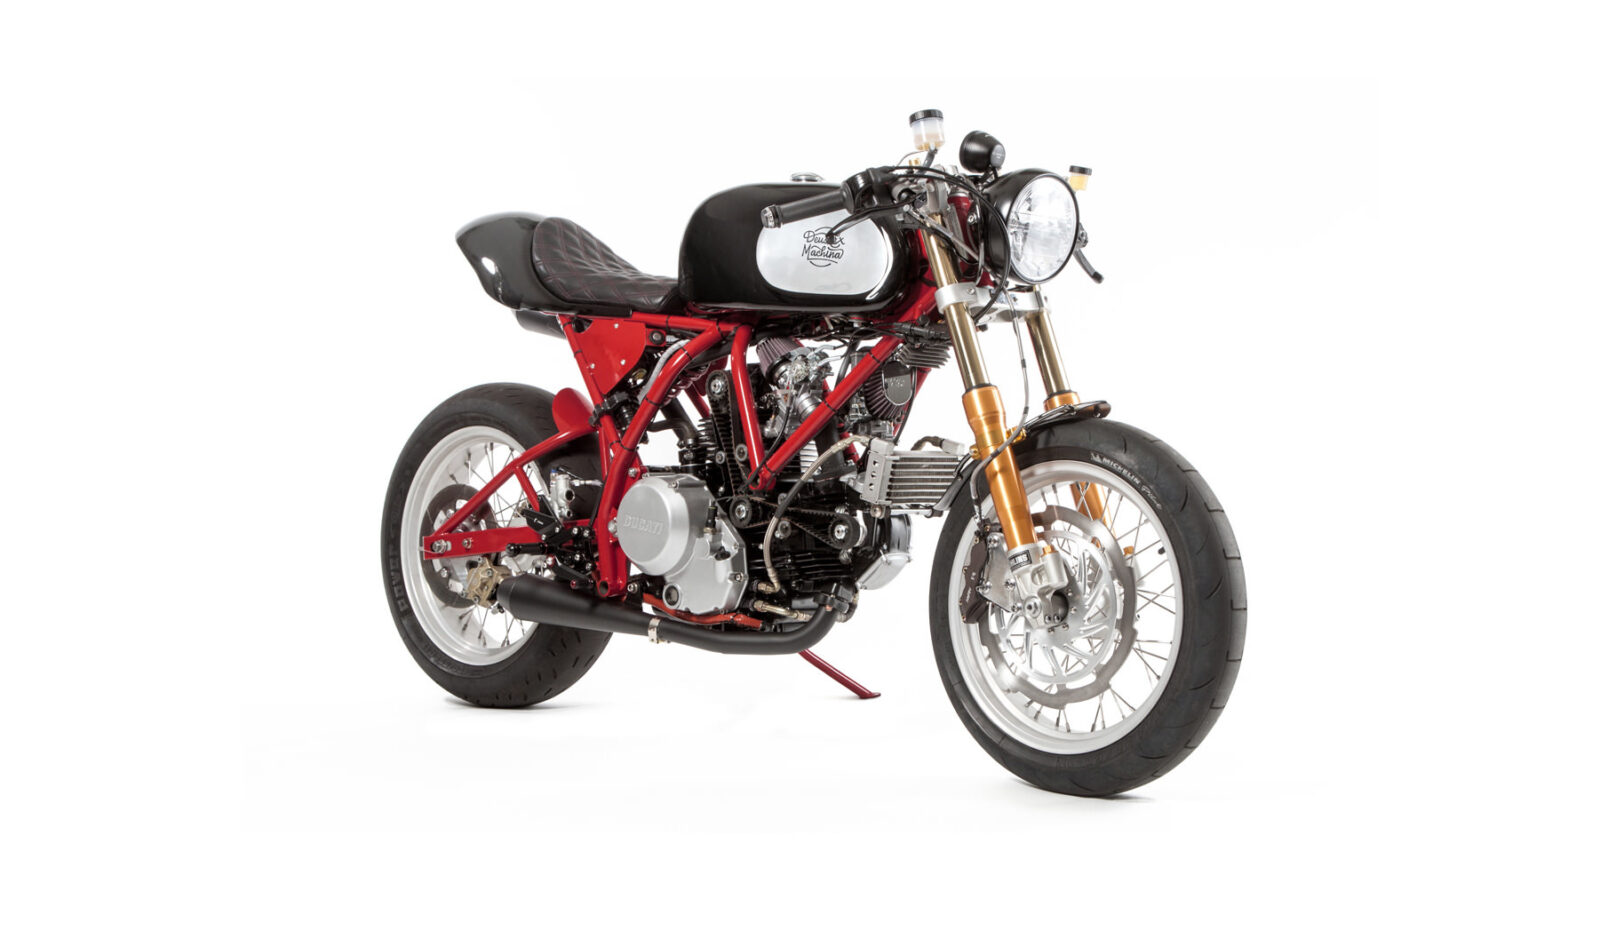 Ducati Monster 2 1600x931 - Ducati Monster by Deus Ex Machina